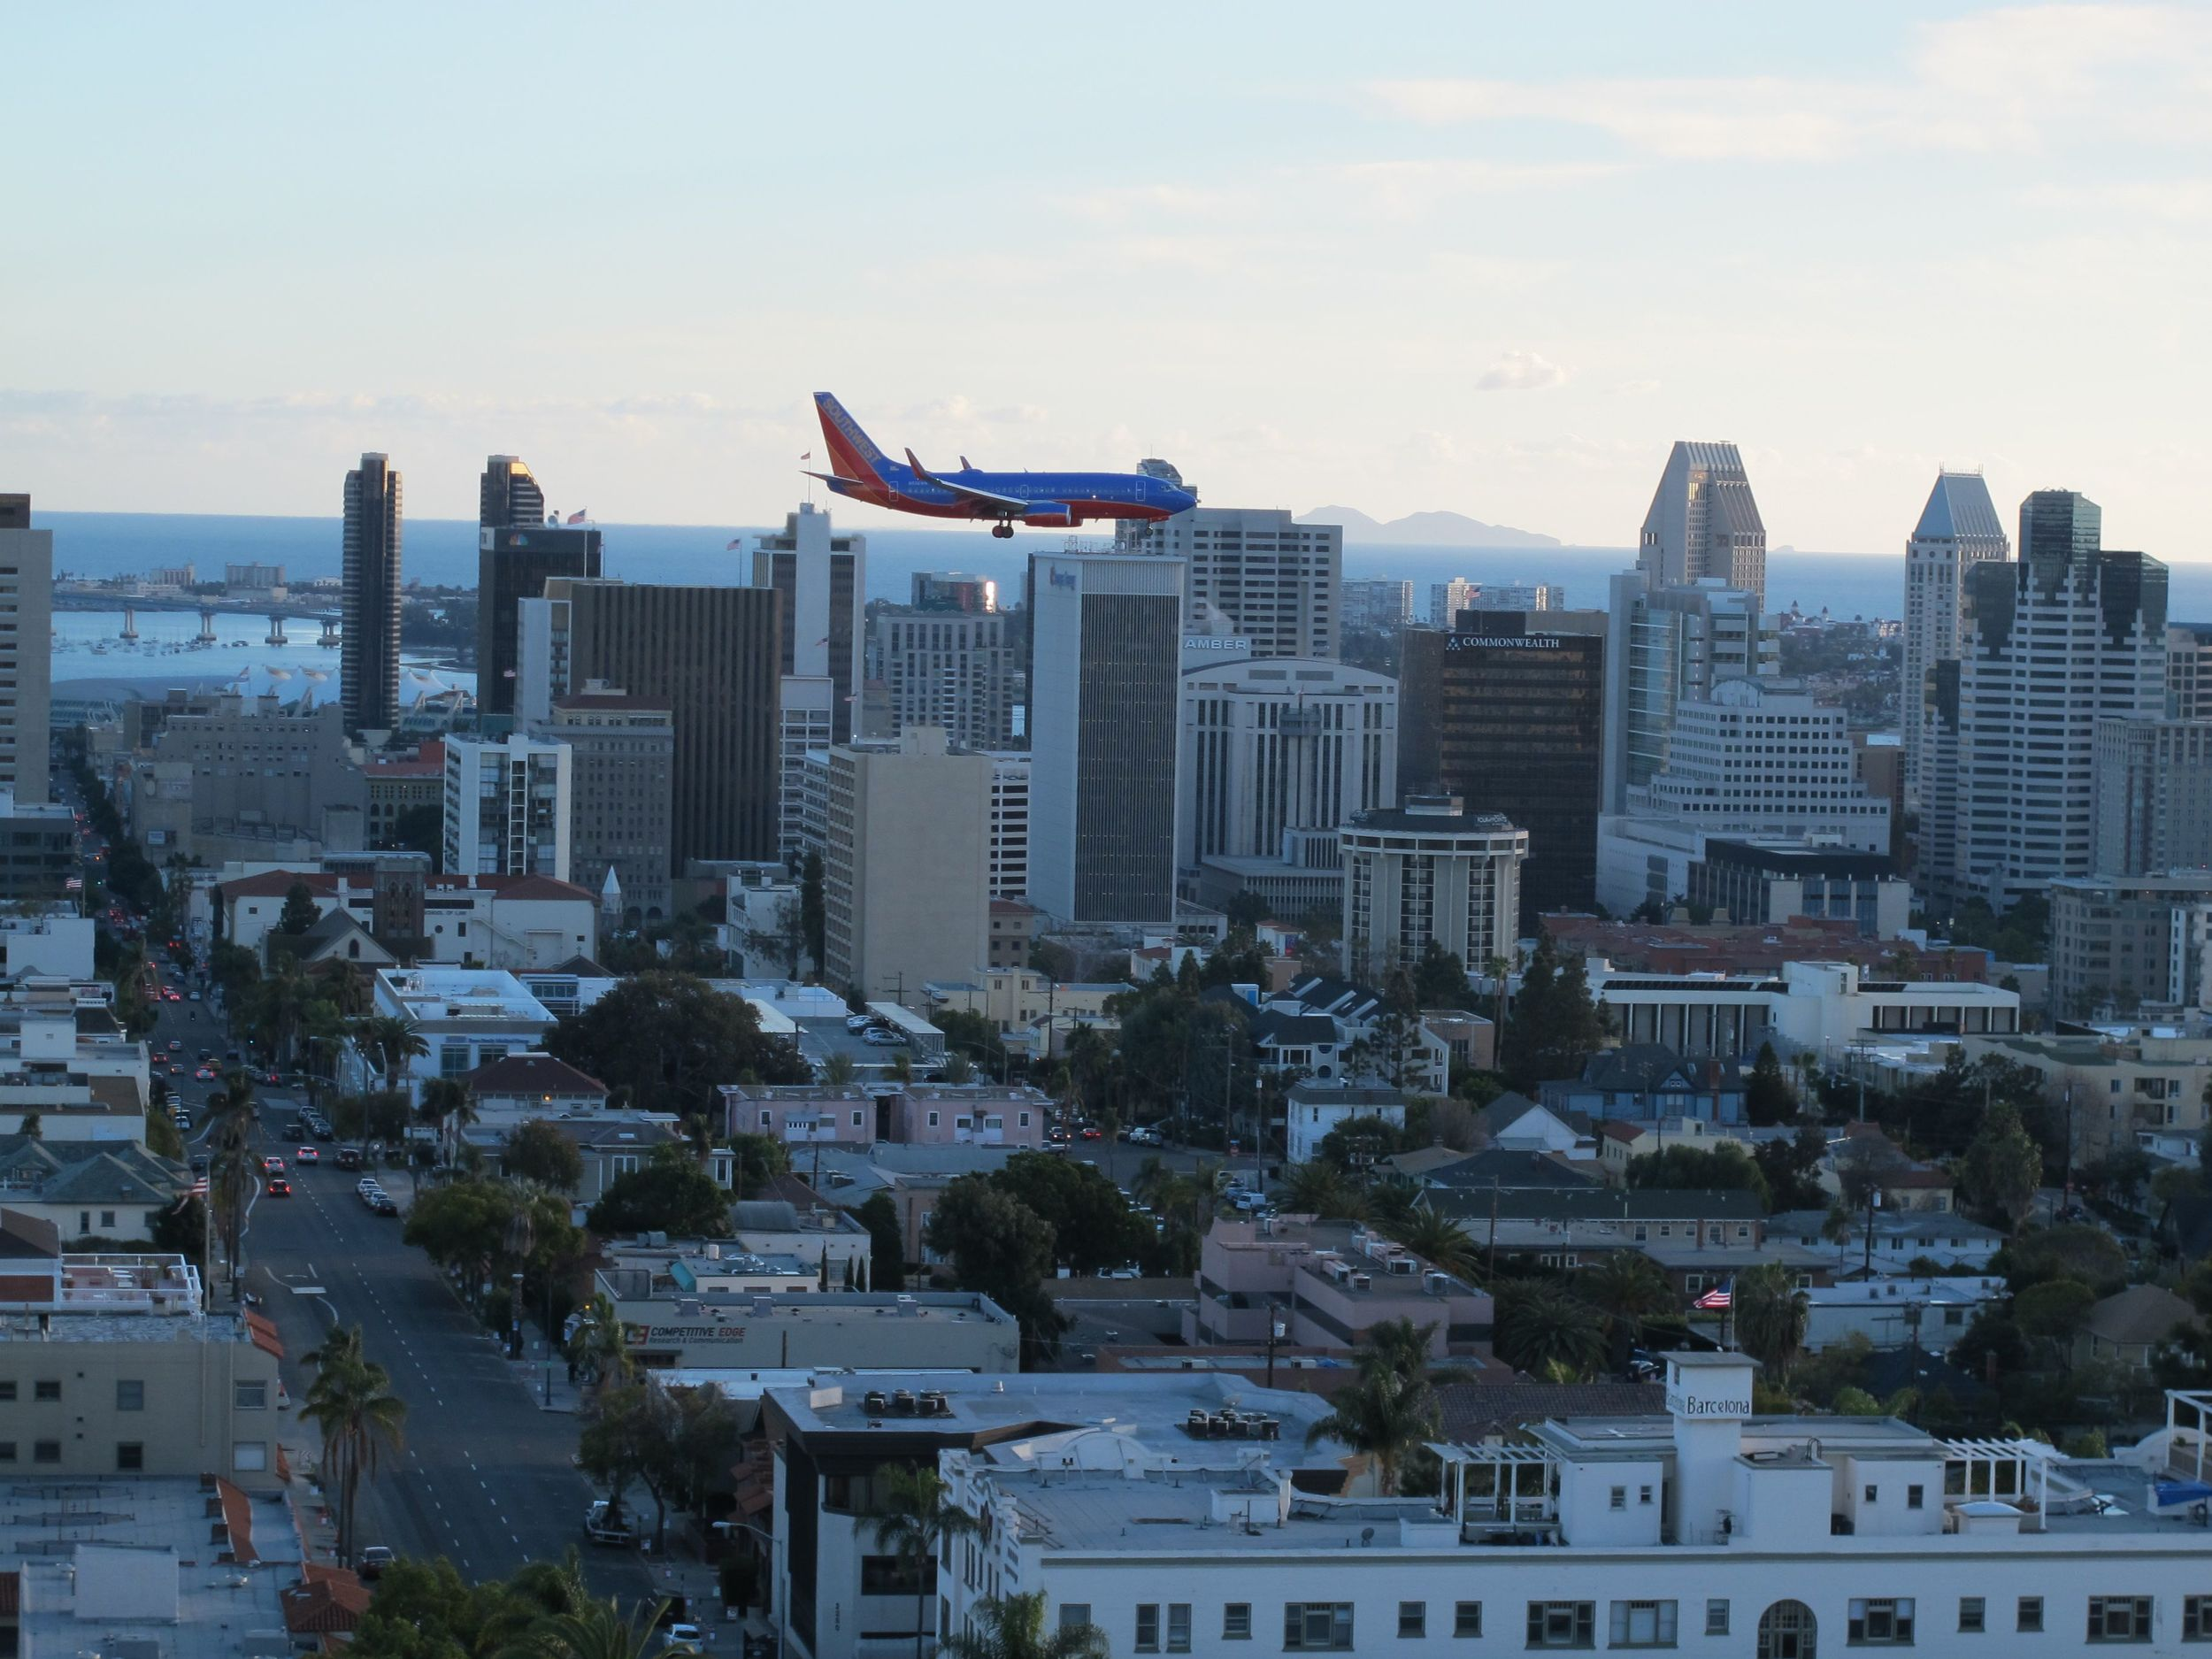 Gary took us to Mister A's, a rooftop restaurant from which you can see the entire city and watch airliners come in surprisingly close to downtown. With all the air bases around, the roar of jets is a recurring stanza in the San Diego sound track.